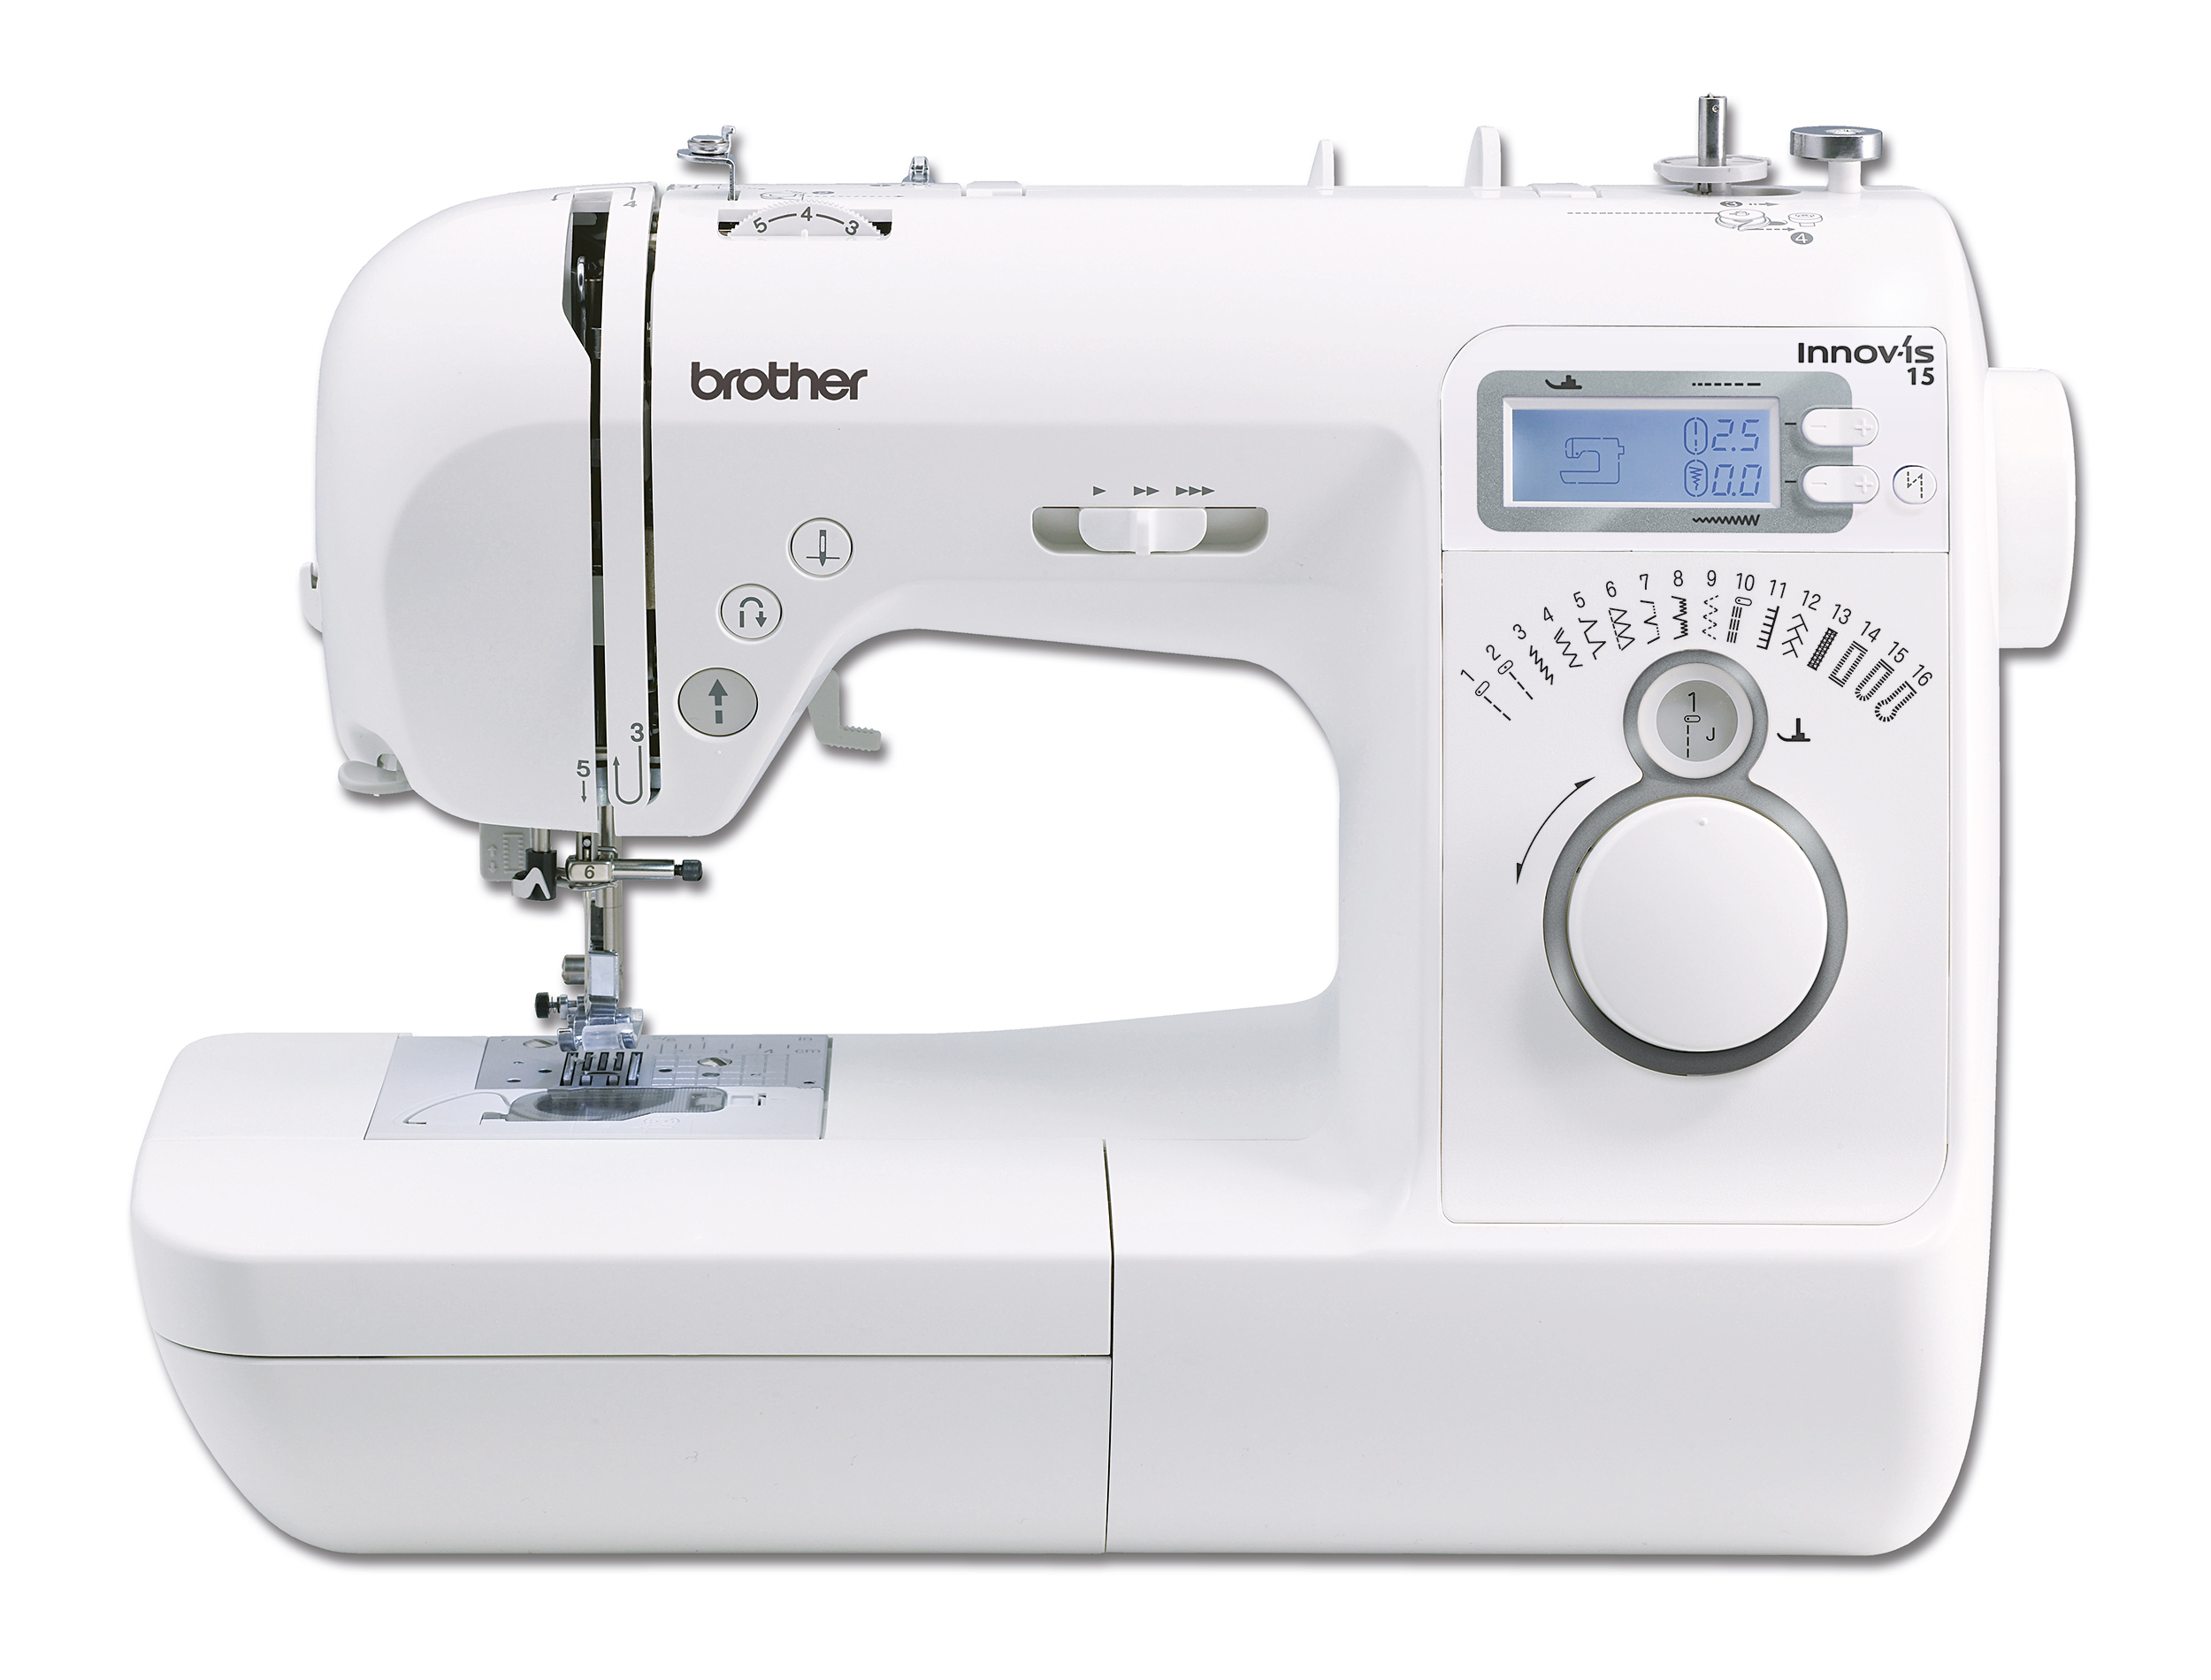 machine a coudre brother innovis 15